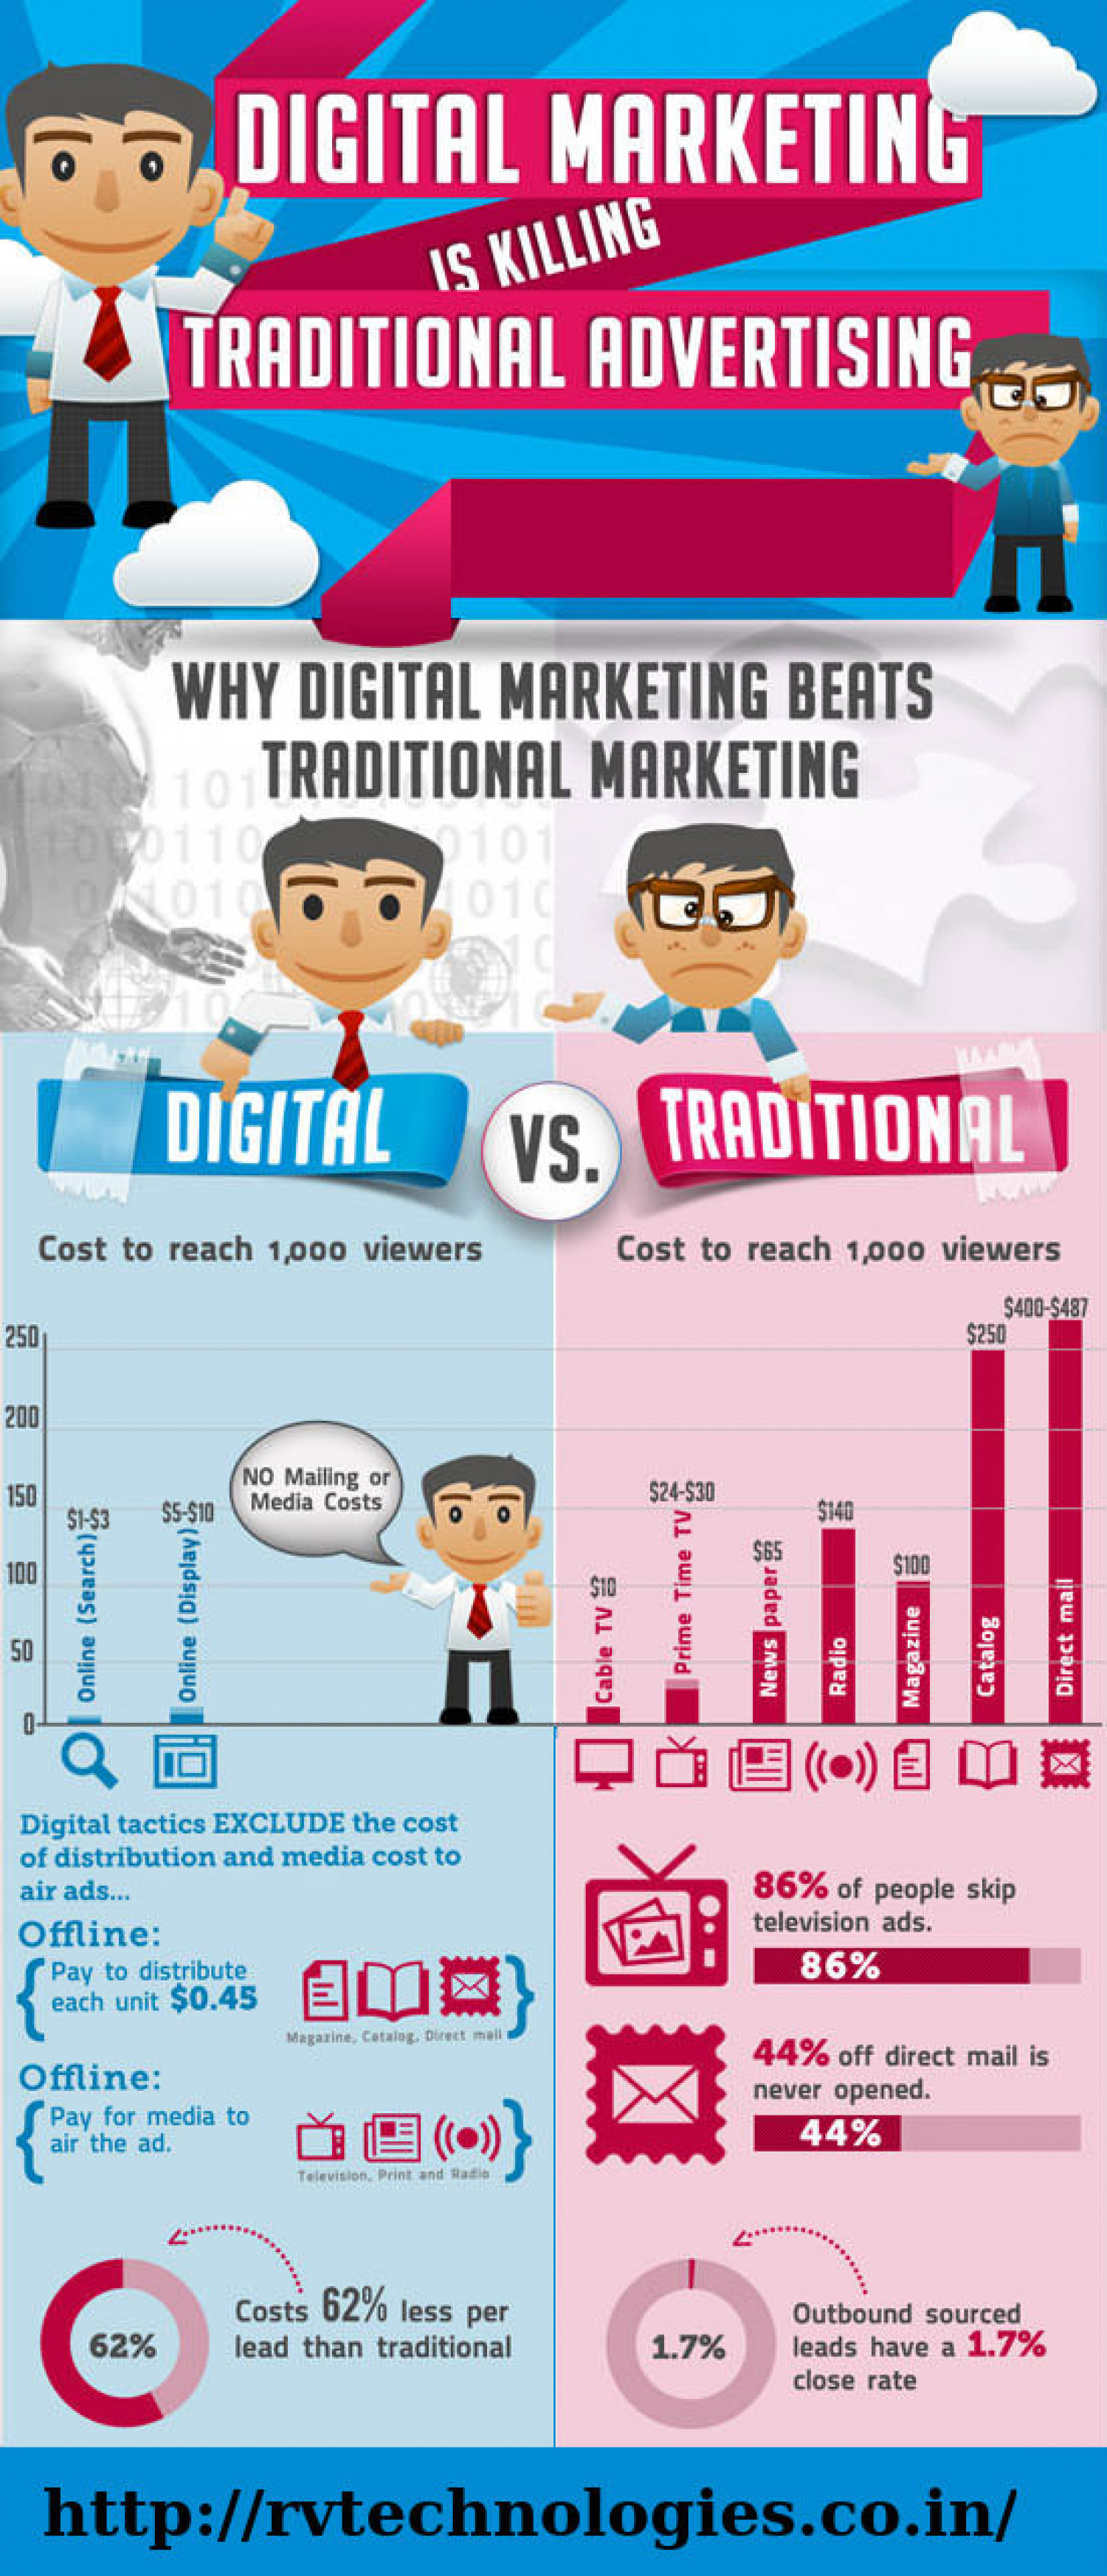 Digital Marketing Is Killing Traditional Advertising Infographic